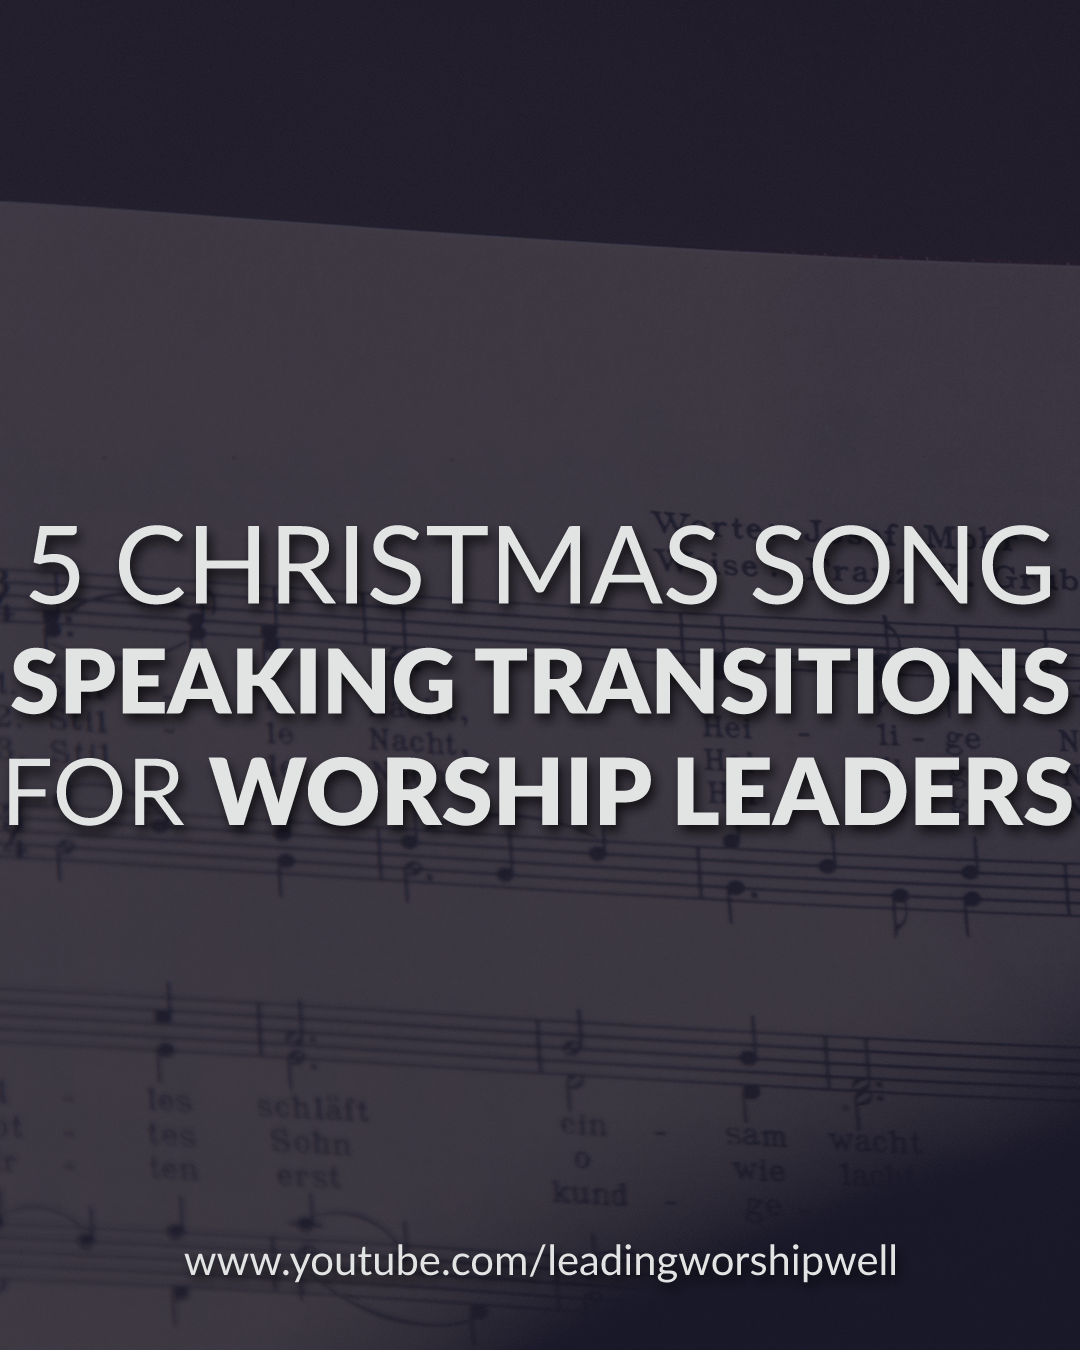 Why Isn'T 99.9 Playing Christmas Music Right Now 2021 What To Say While Leading Christmas Worship 5 Worship Speaking Transitions For Christmas Songs Video Leading Worship Well Worship Leading Tips